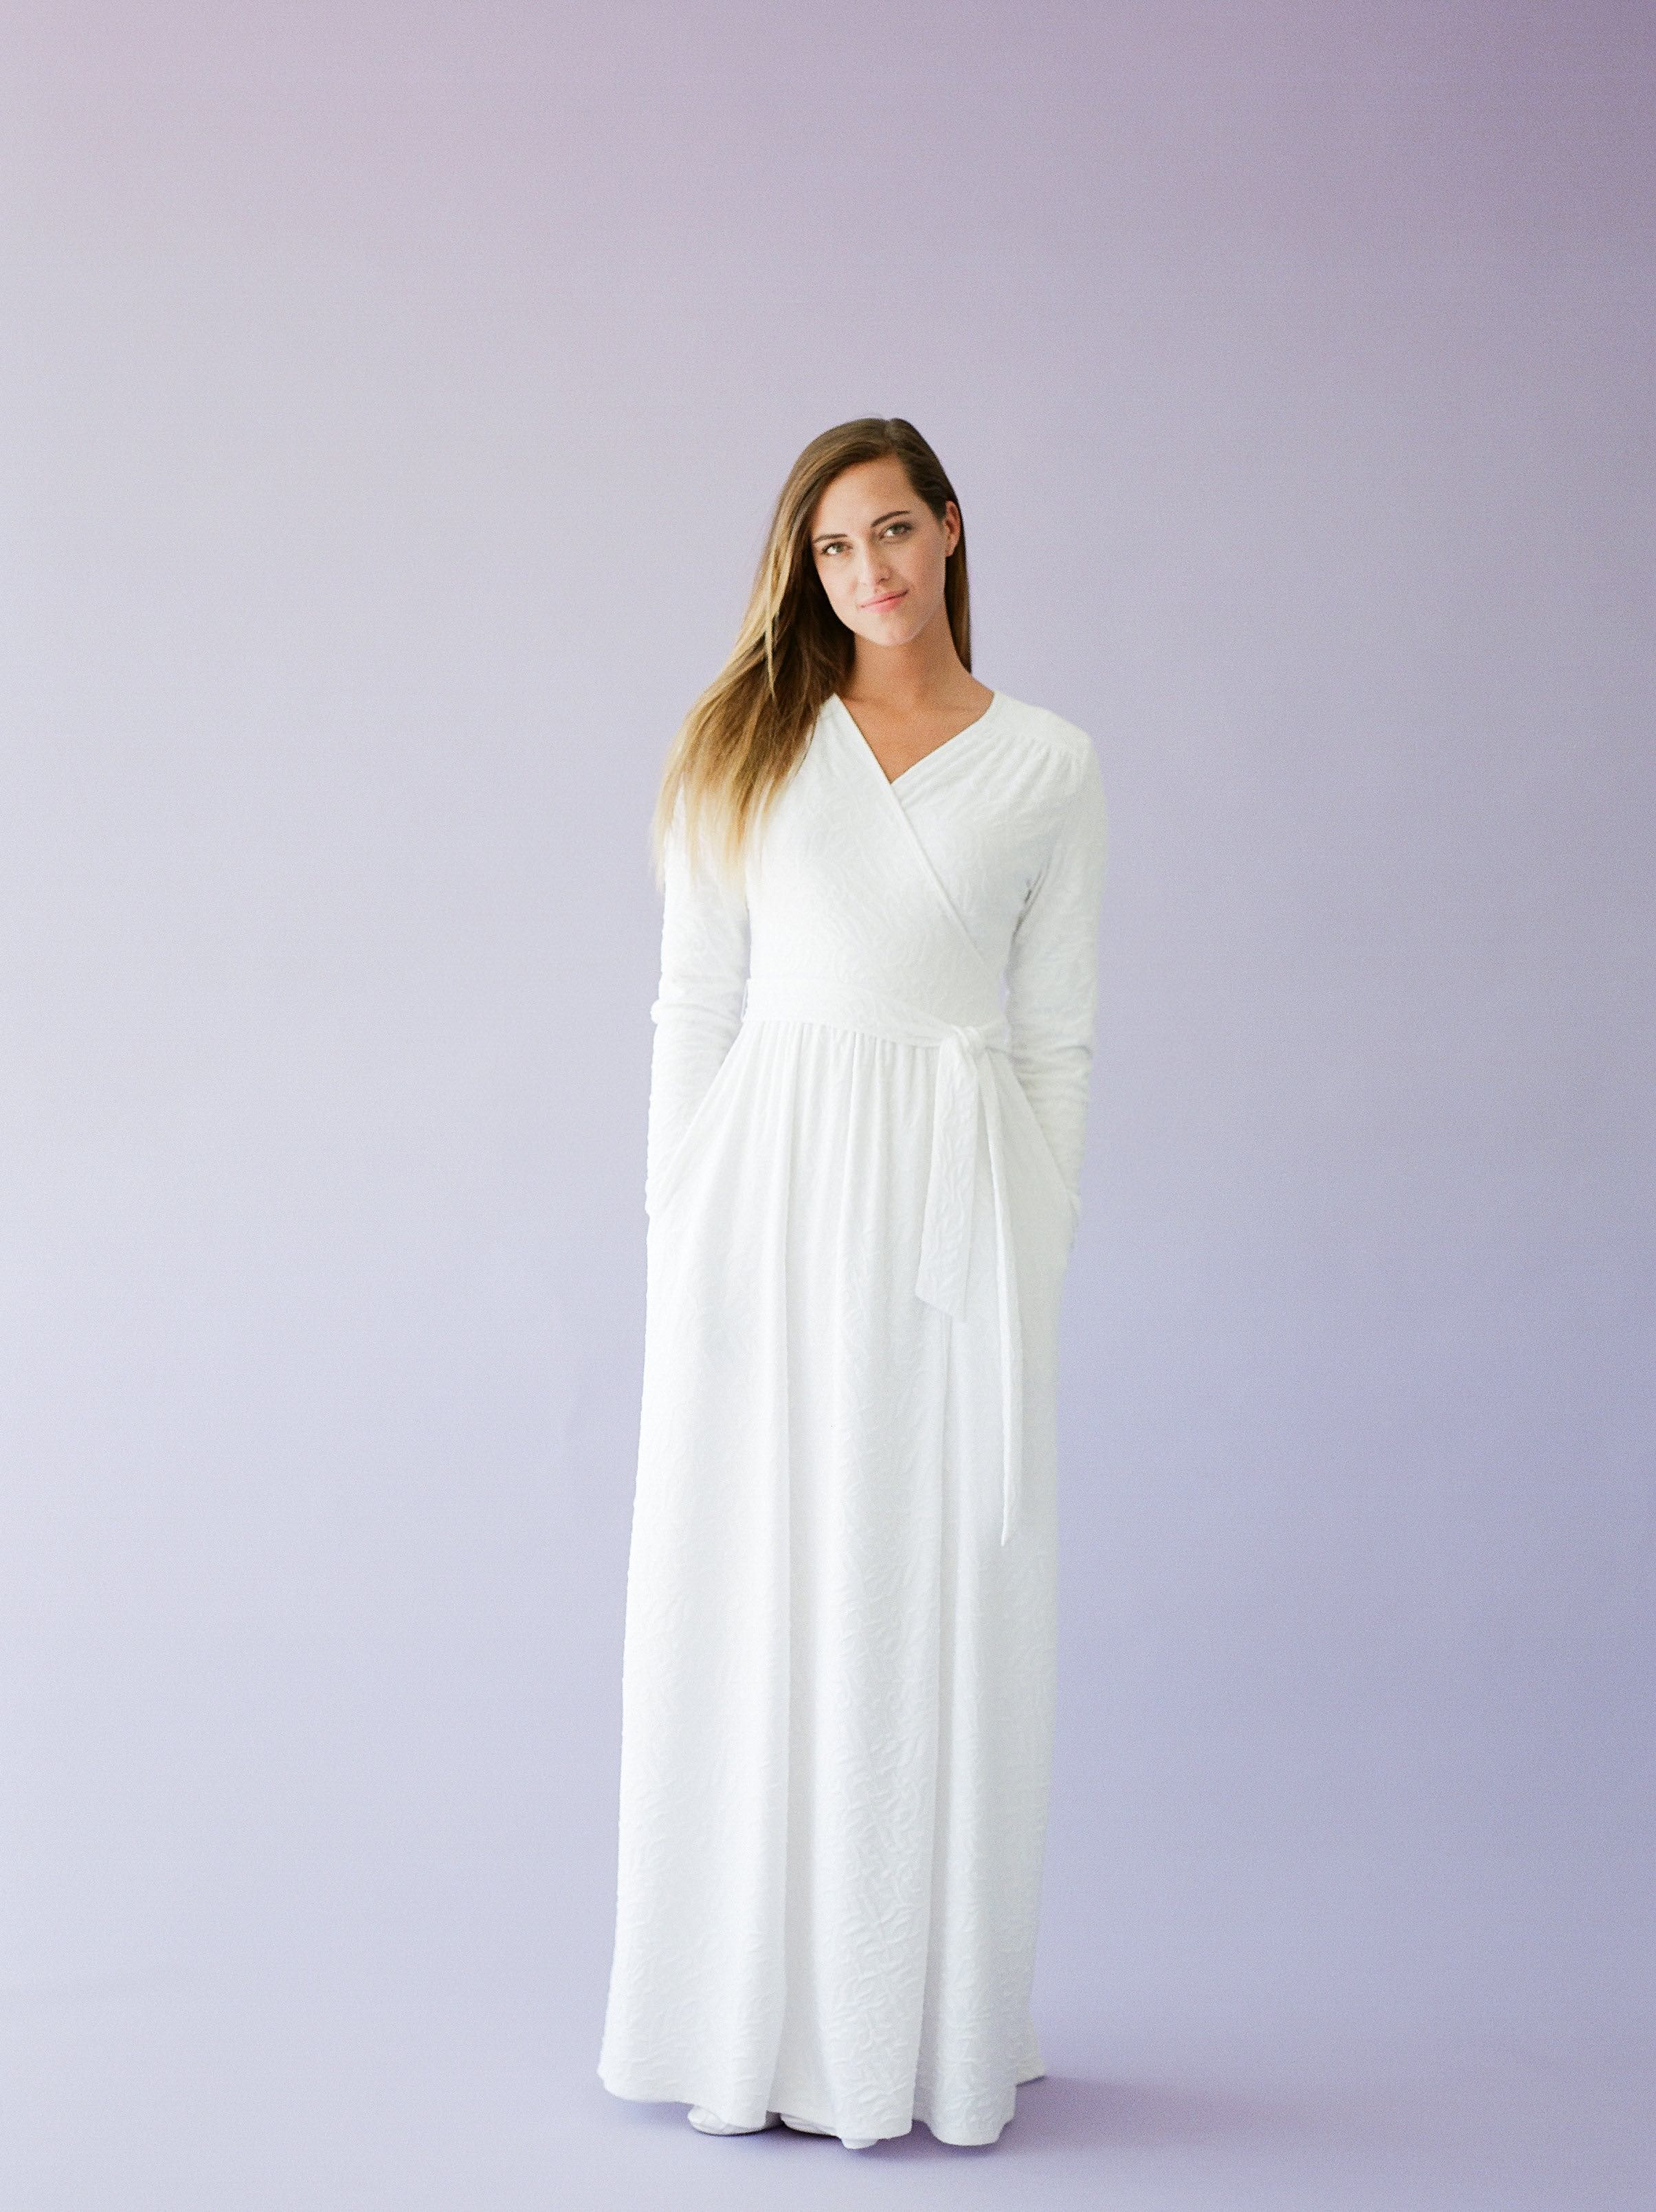 30 Stunning Temple Dresses Any Latter Day Saint Woman Would Love To Wear Temple Dress Lds Temple Dress Dresses [ 3220 x 2410 Pixel ]